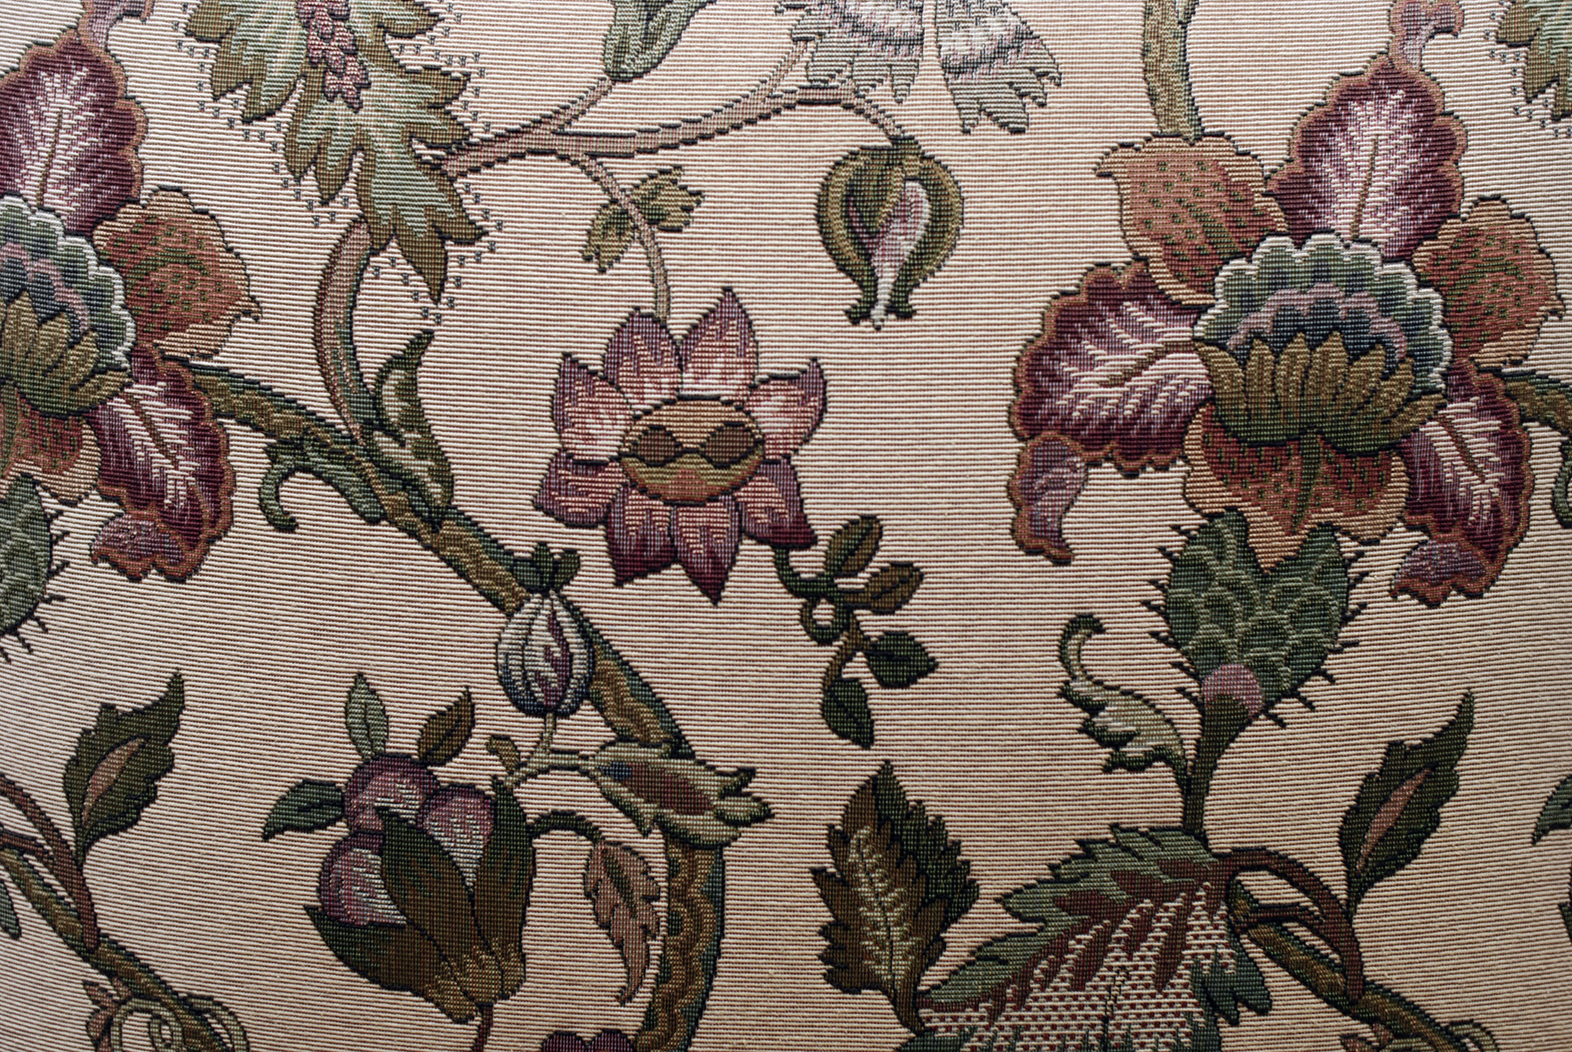 Free Stock Photo 1891Floral fabric background texture